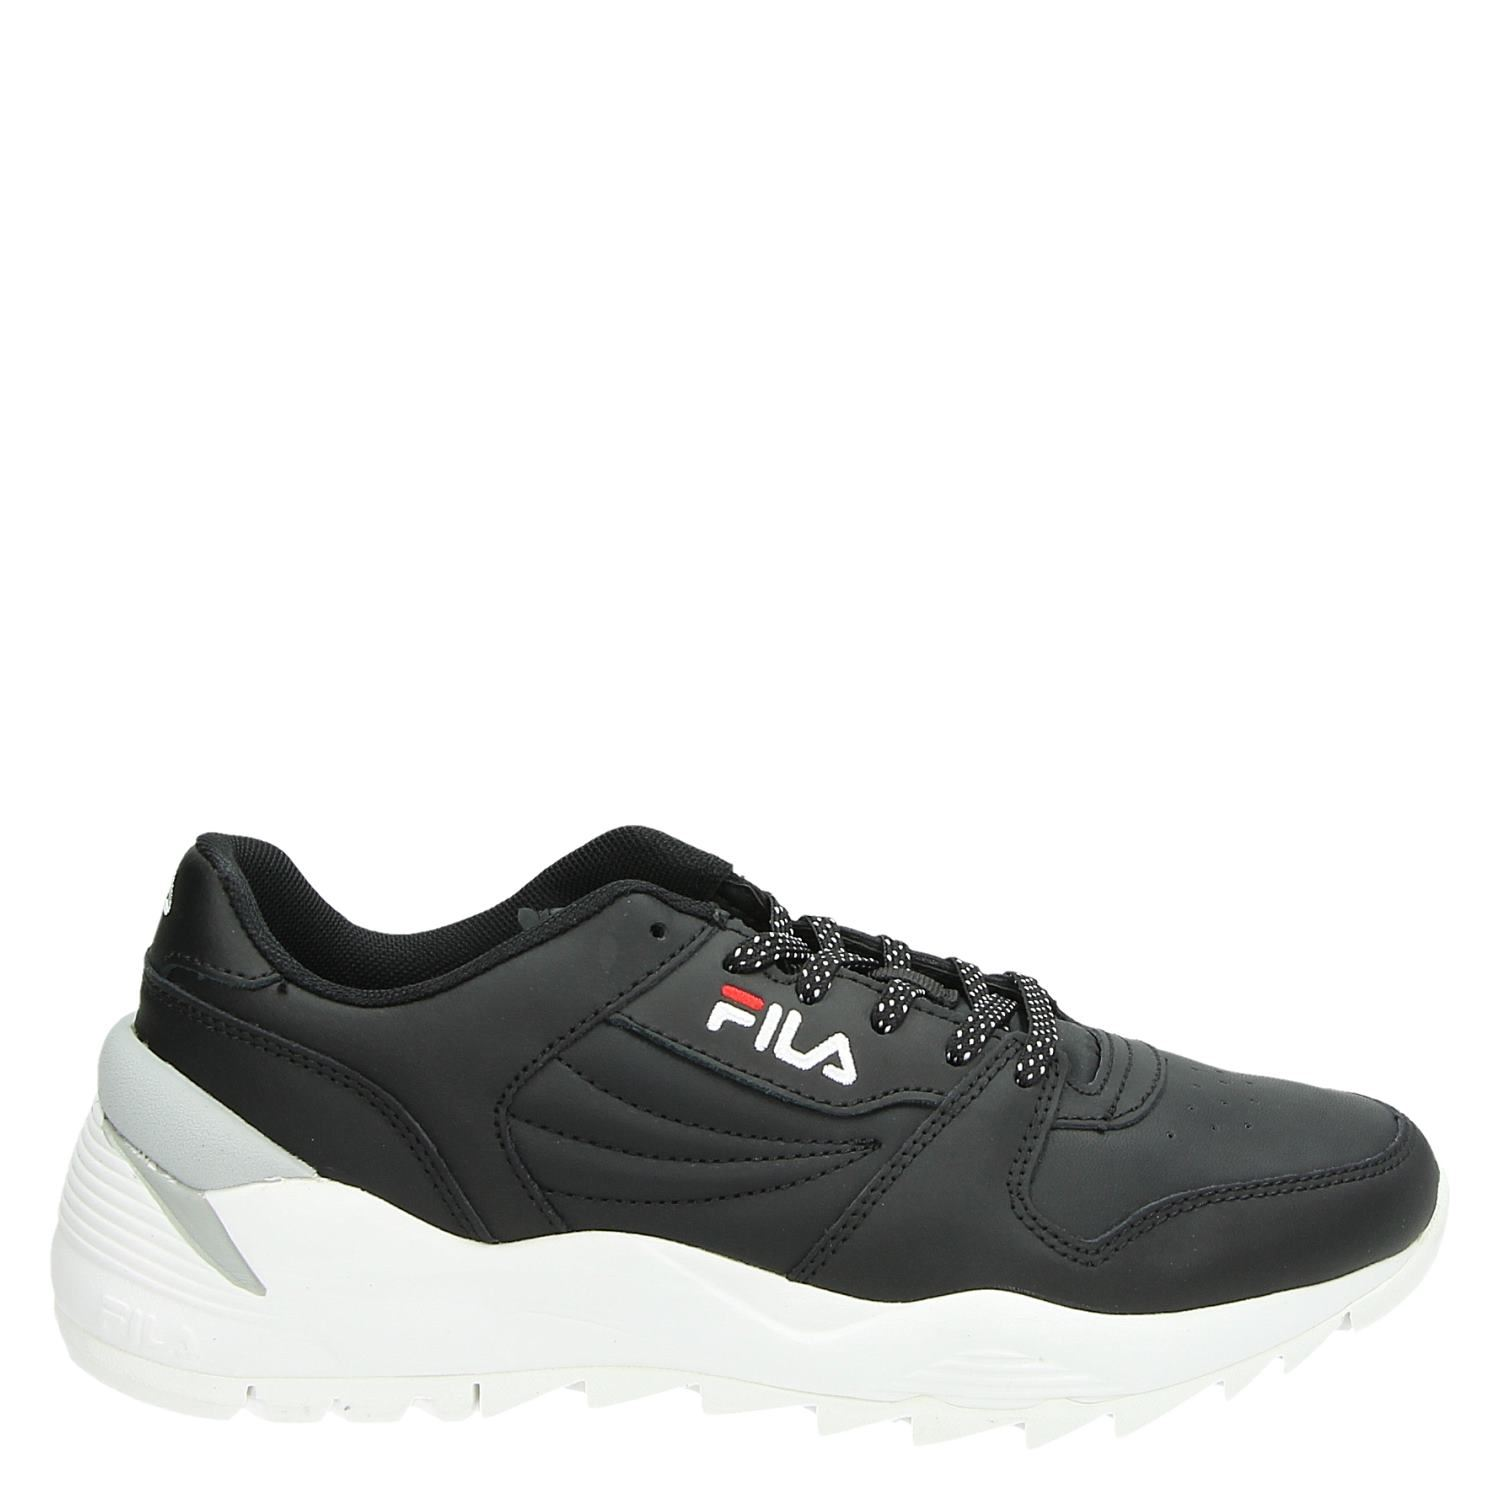 ad876c9f2d0 Fila Orbit CMR jogger Low heren lage sneakers zwart